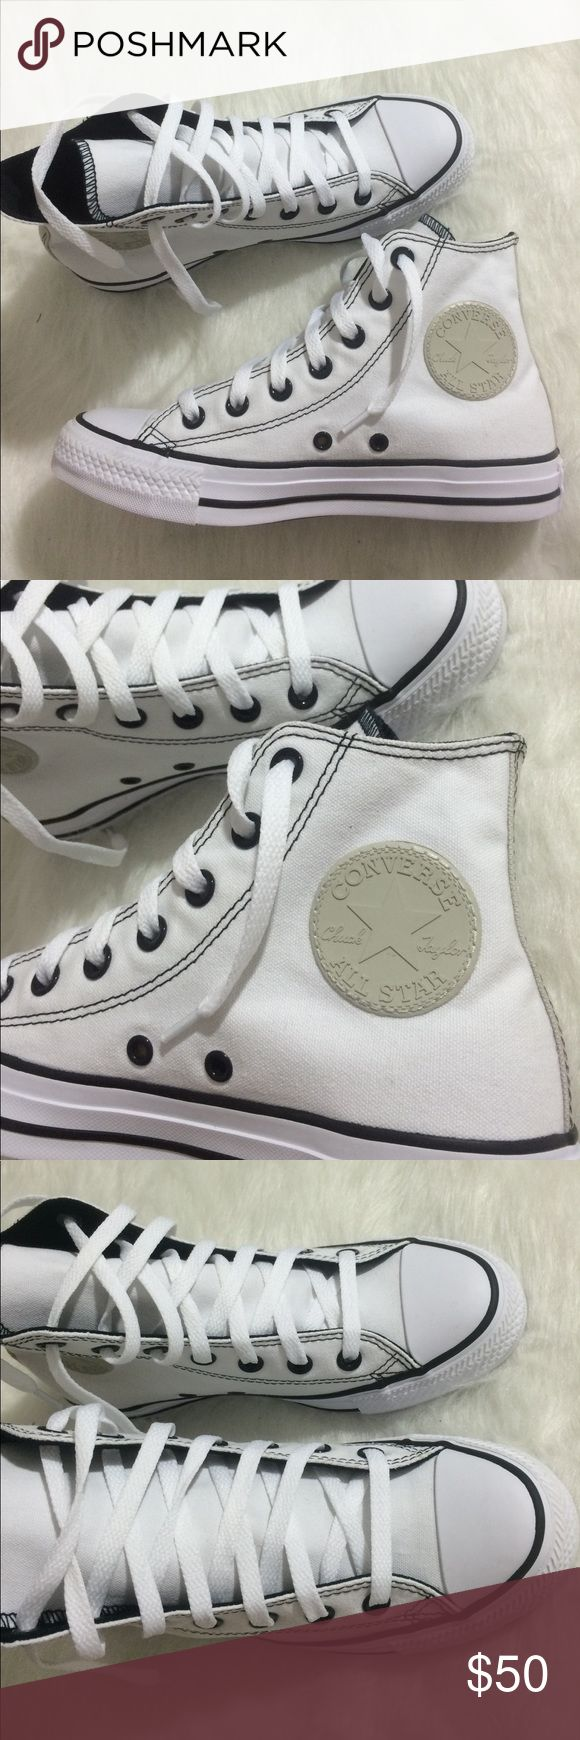 Converse white chuck Taylor shoes womens size 6.5 Brand new without box. Size 6.5 Customized on the converse website. One of a kind. Ships same day or very next. ✨ Converse Shoes Sneakers